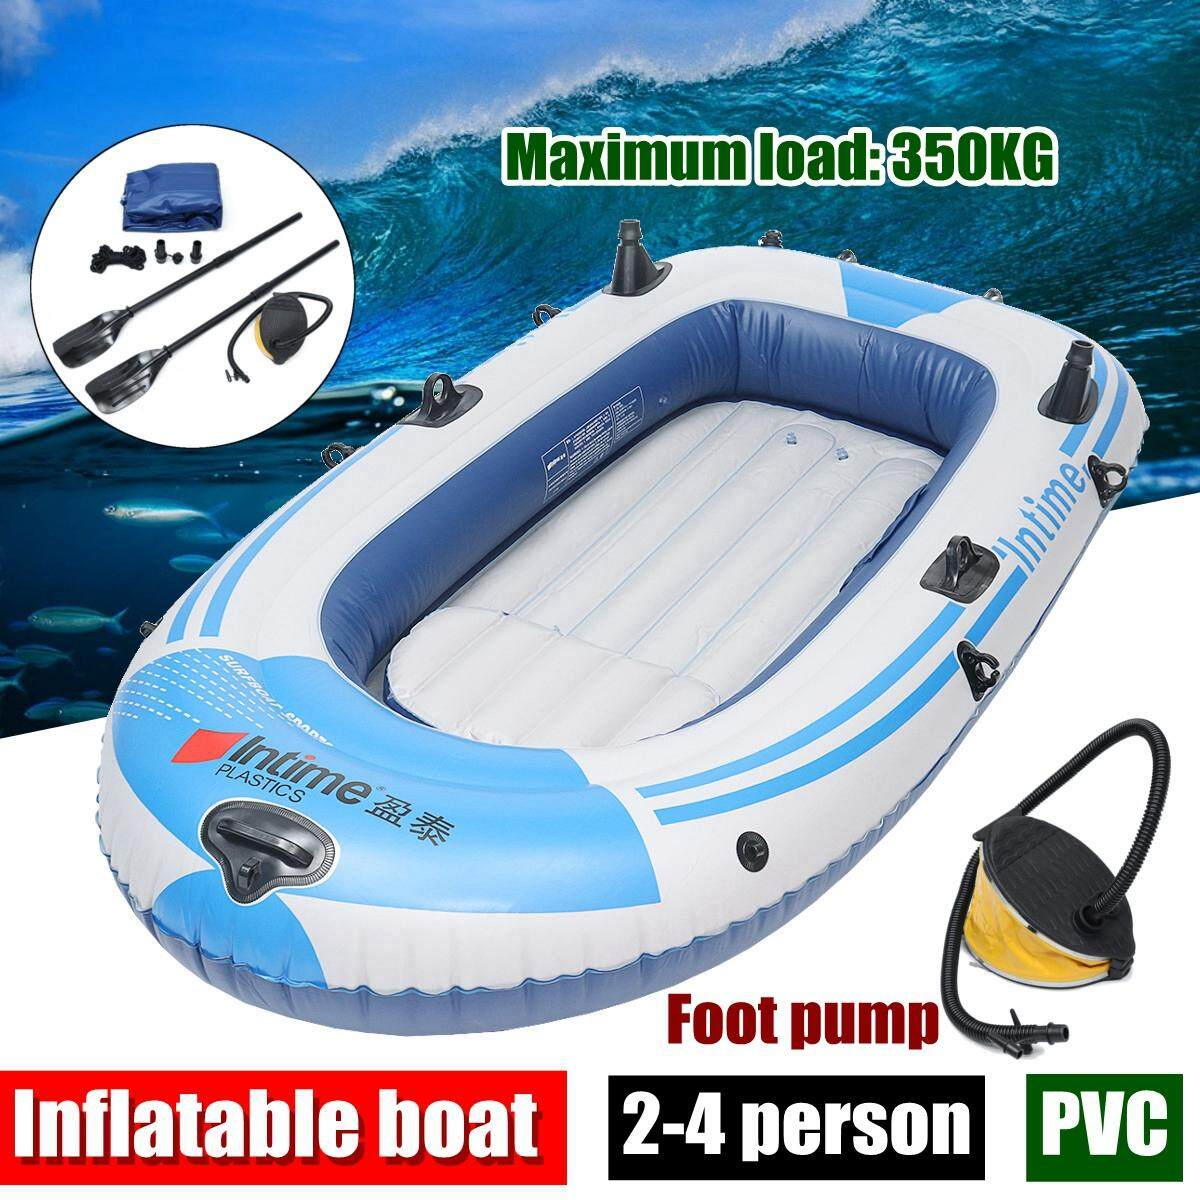 Inflatable Boats for sale - Dinghies Online Deals & Prices